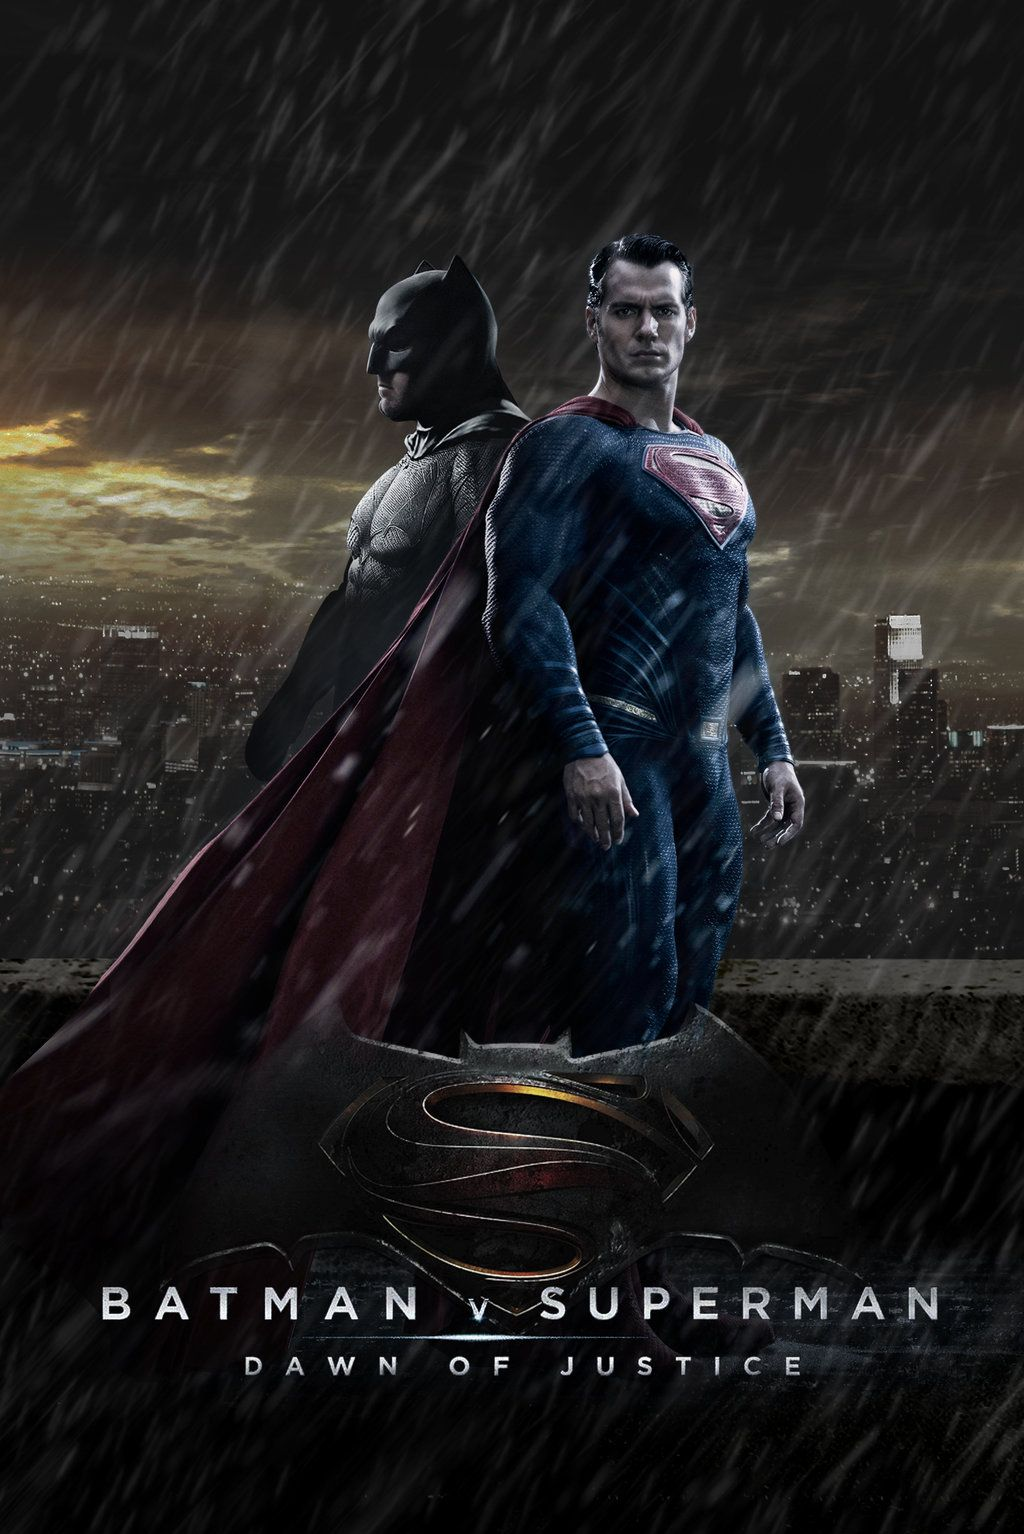 Download Batman Vs Superman Dawn Of Justice Wallpaper Full HD UpRKD